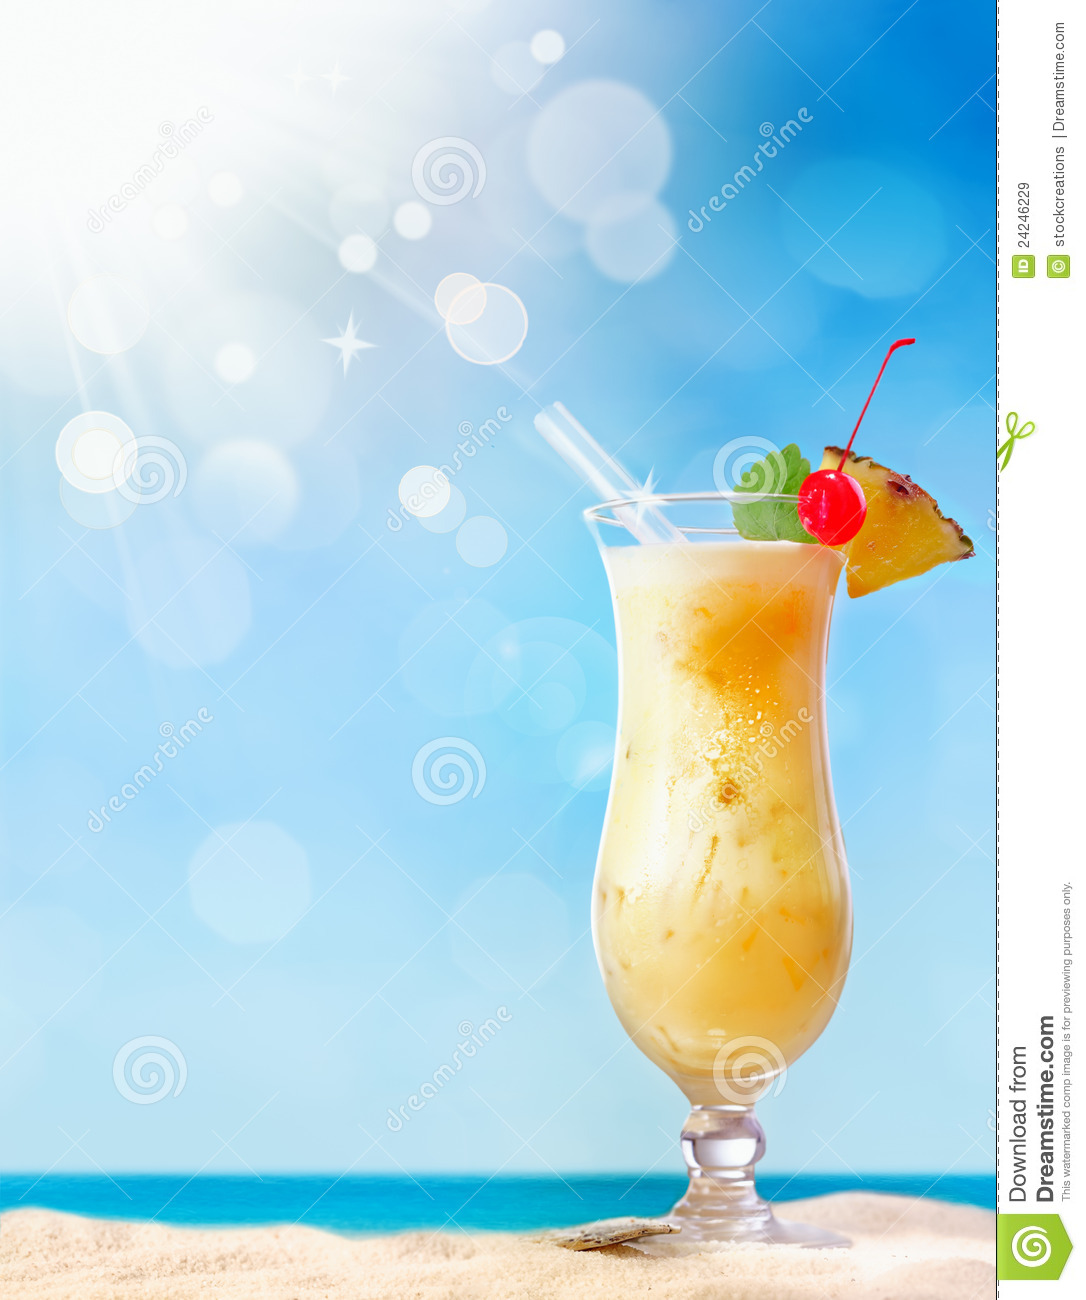 Beautiful Sunny Day At Tropical Beach Royalty Free Stock: Fresh Tropical Coctail On Sunny Beach Royalty Free Stock